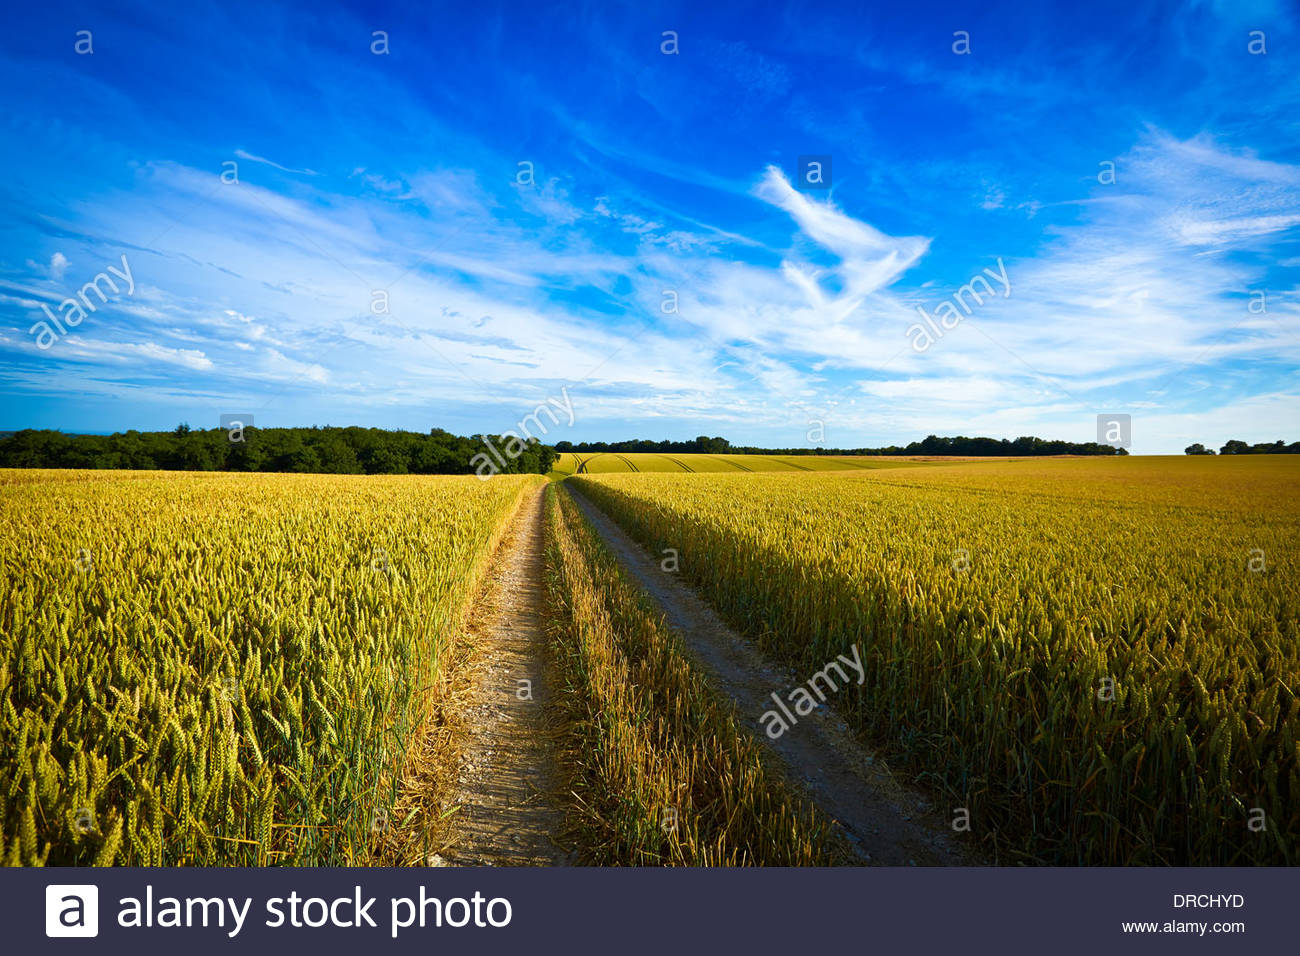 Dirt road in wheat field - Stock Image